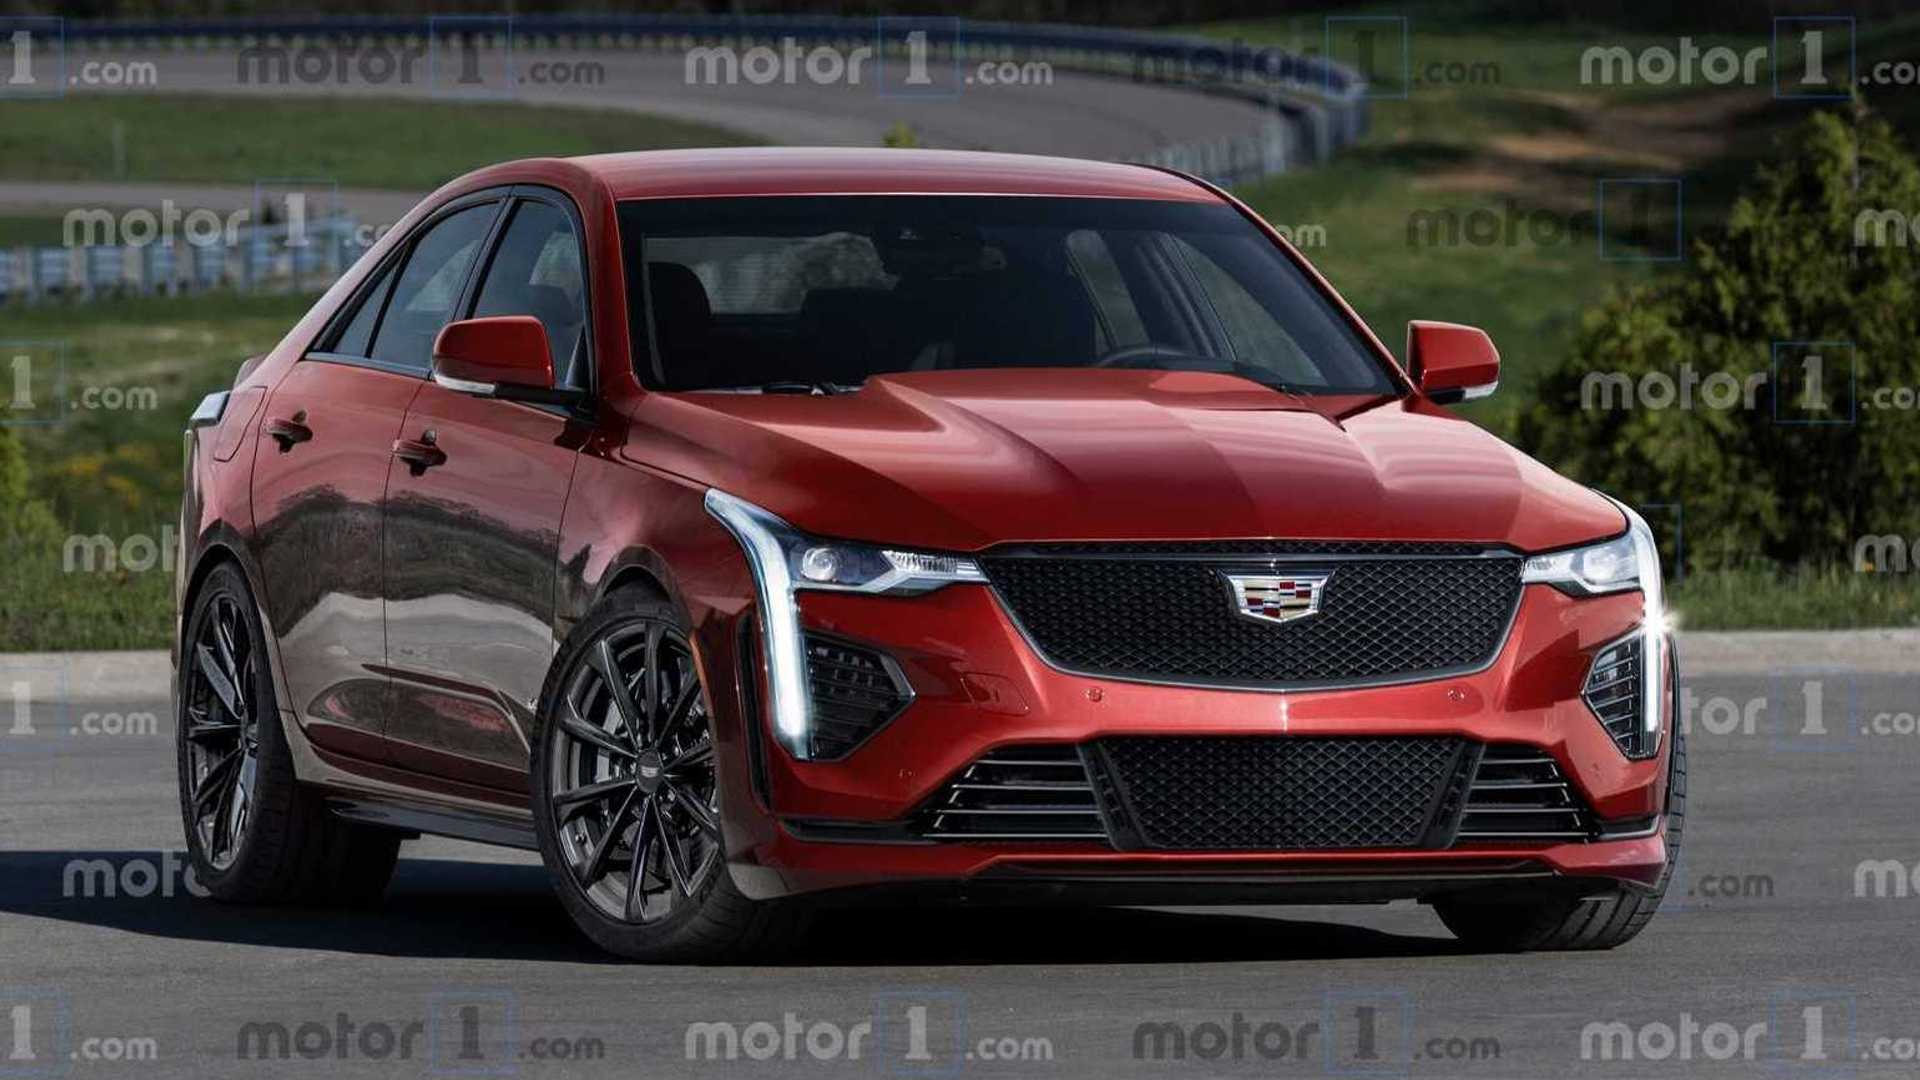 Best Midsize Sedan 2021 2021 New Models Guide: 30 Cars, Trucks, And SUVs Coming Soon